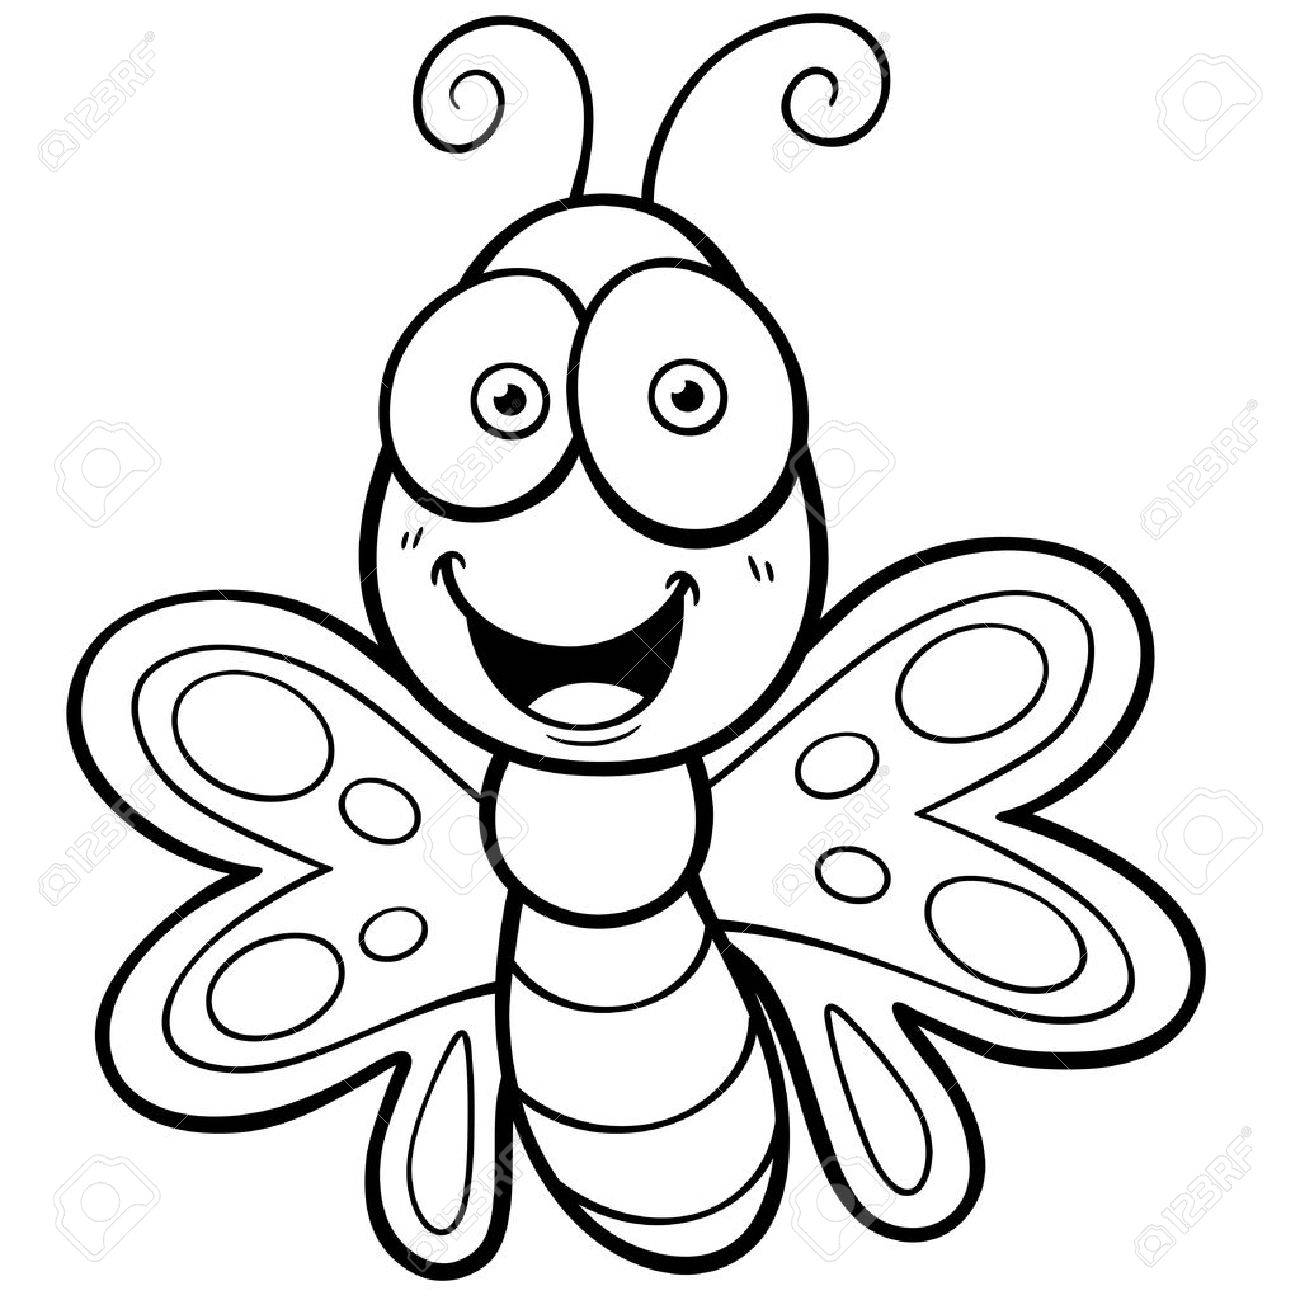 vector illustration of butterfly cartoon coloring book royalty